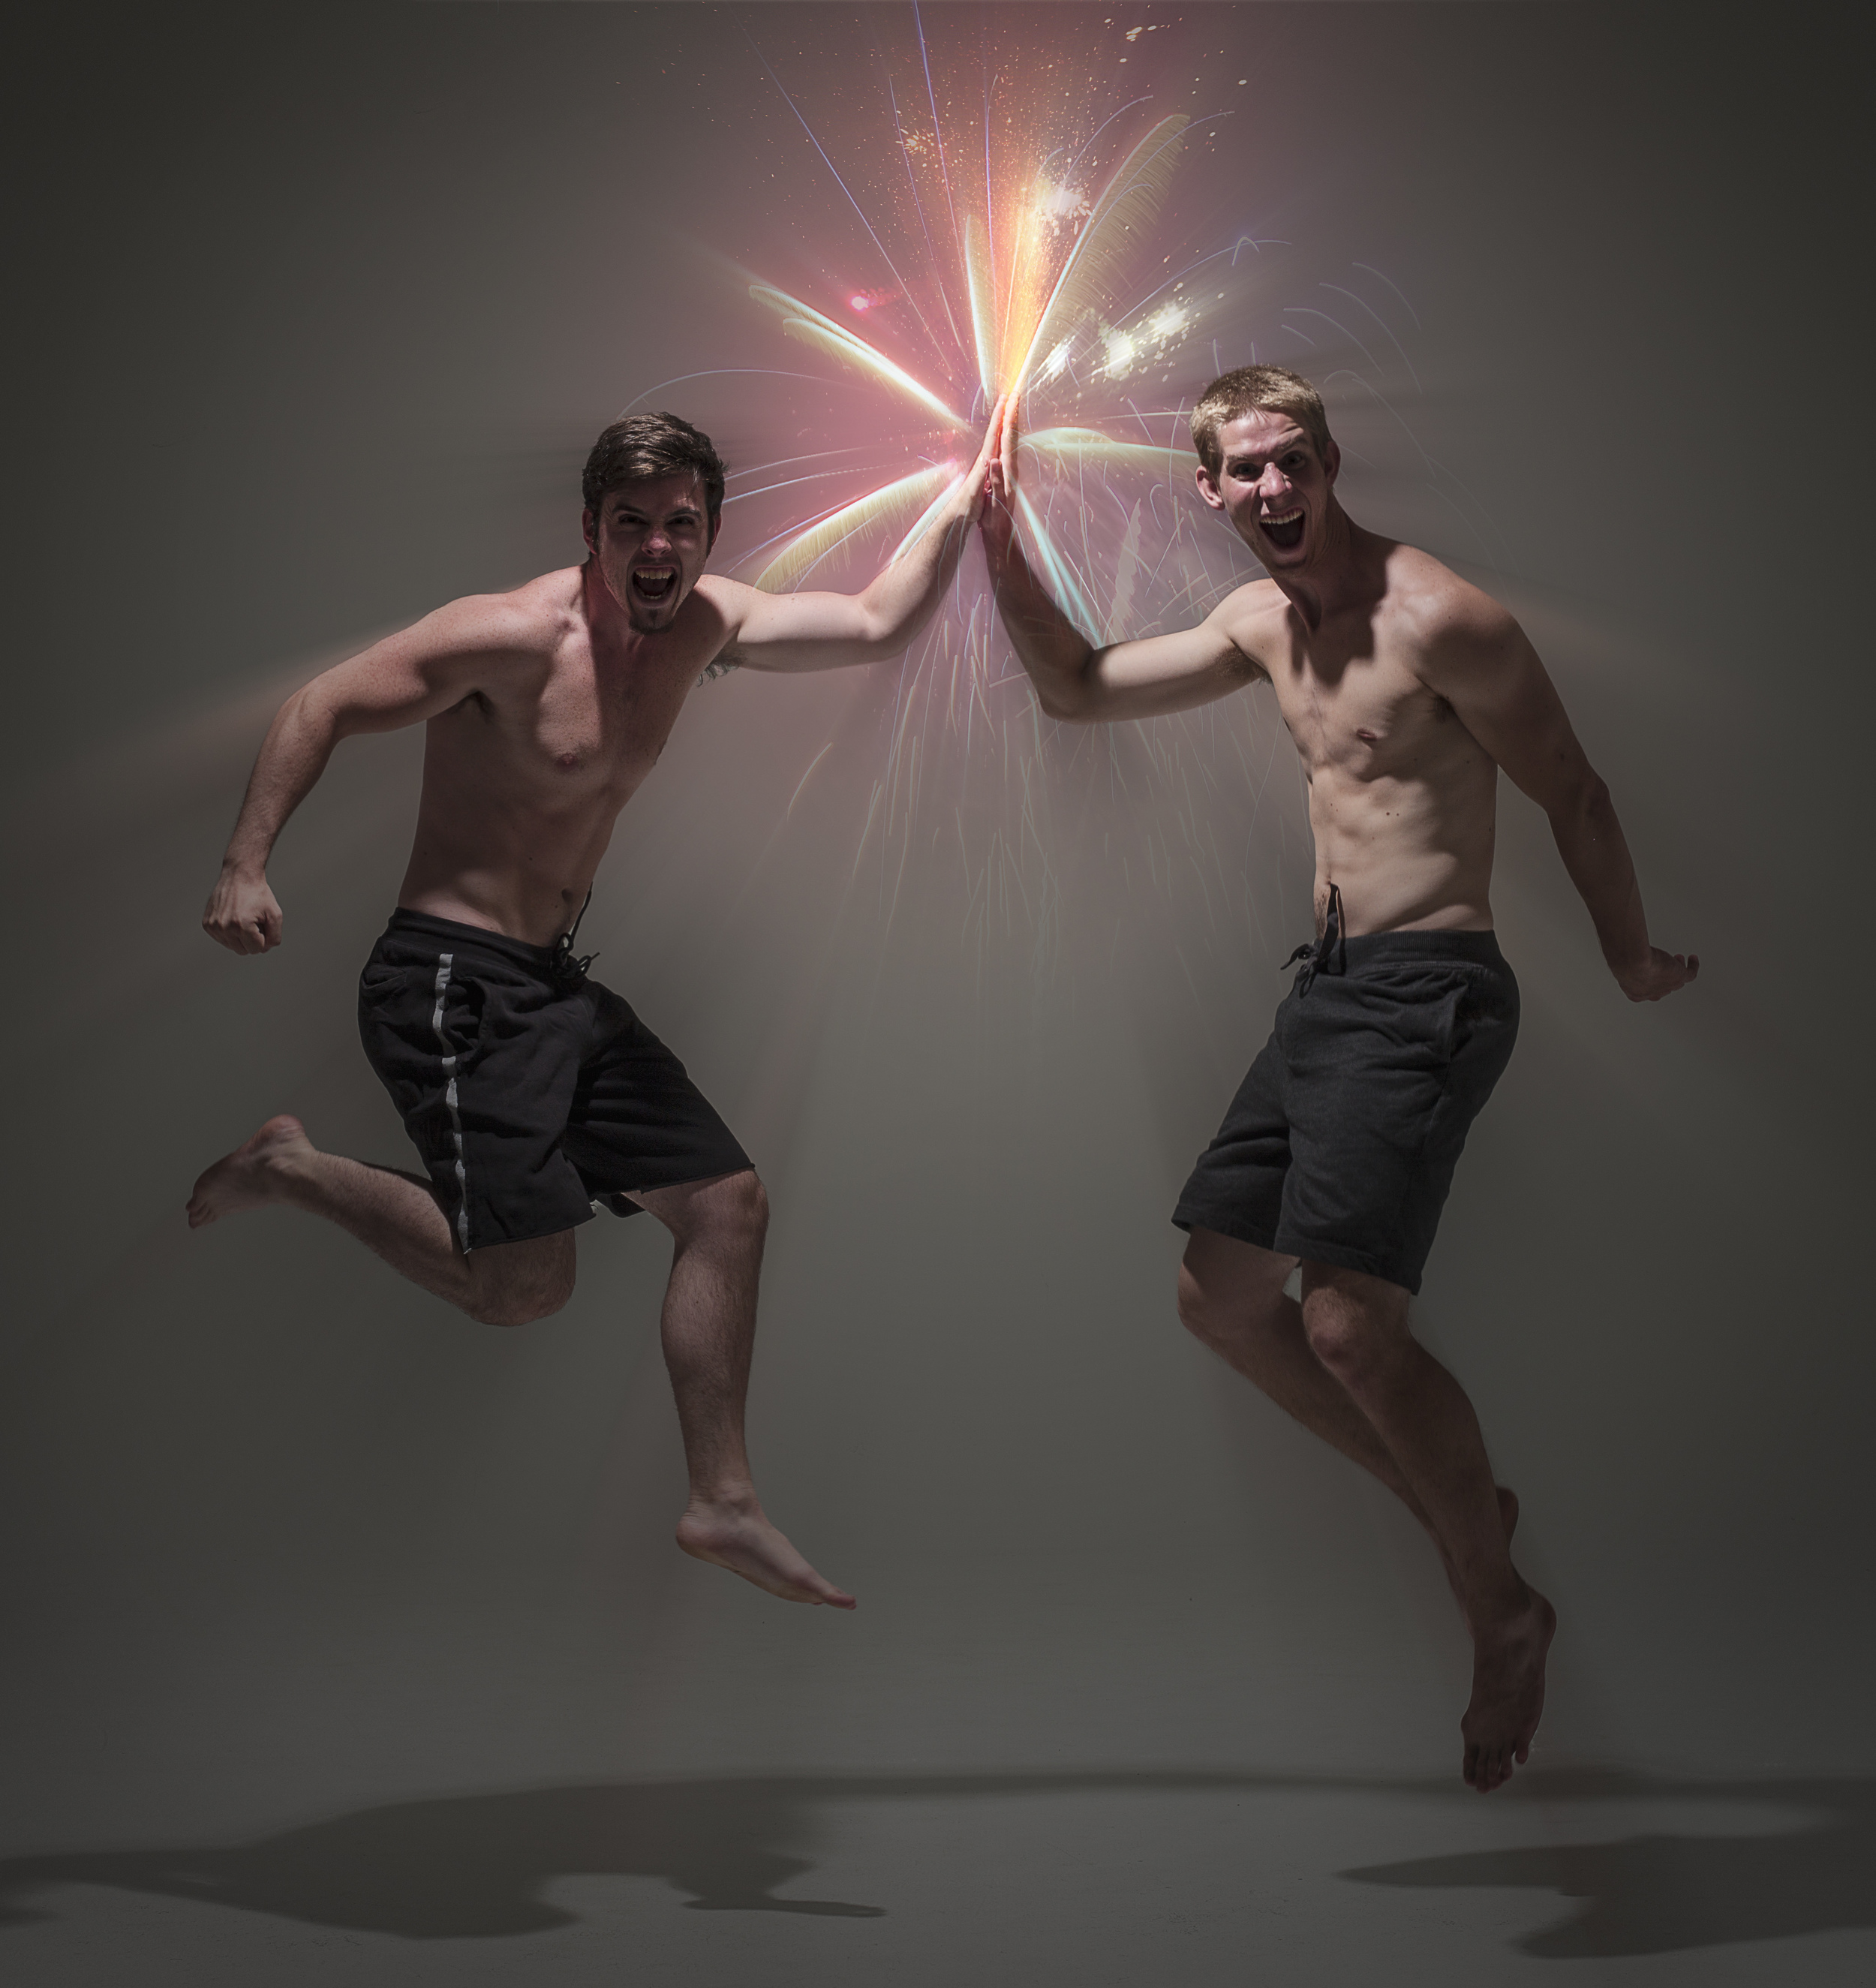 EPIC INTERNET HIGH FIVE IN YO FACE!! Yeah, we're shirtless, deal with it, it's not weird.....